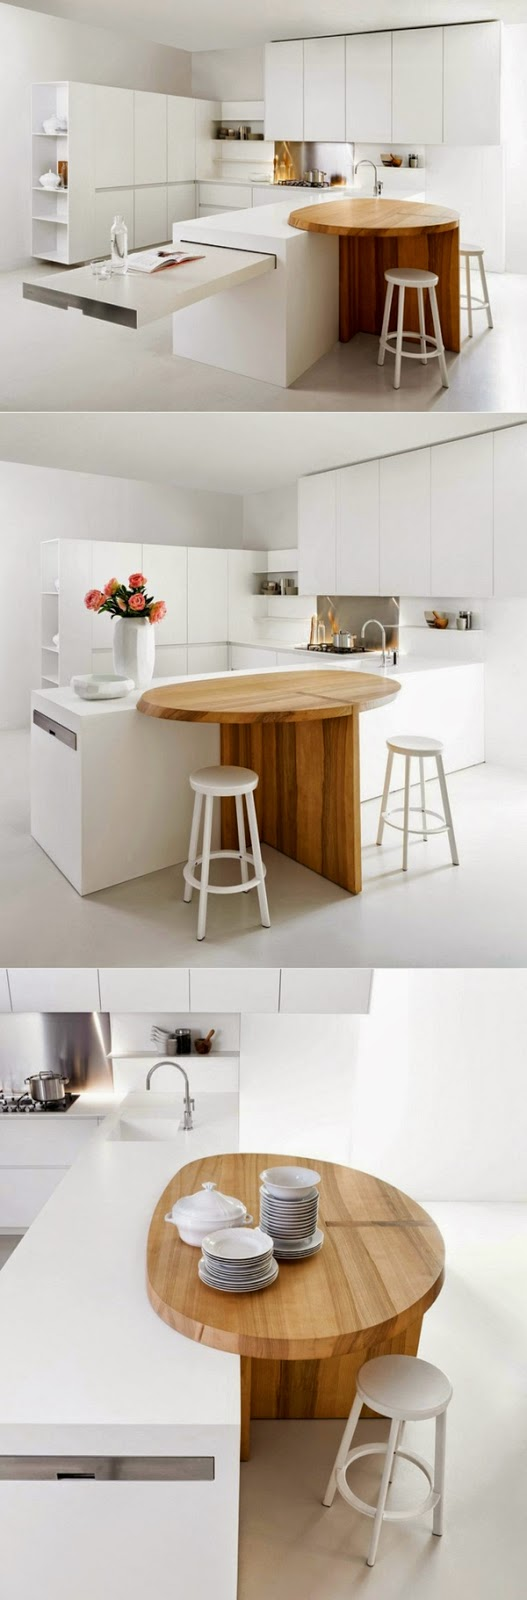 White Kitchen Worktops fascinating ideas for modern kitchen worktops of wood and glass